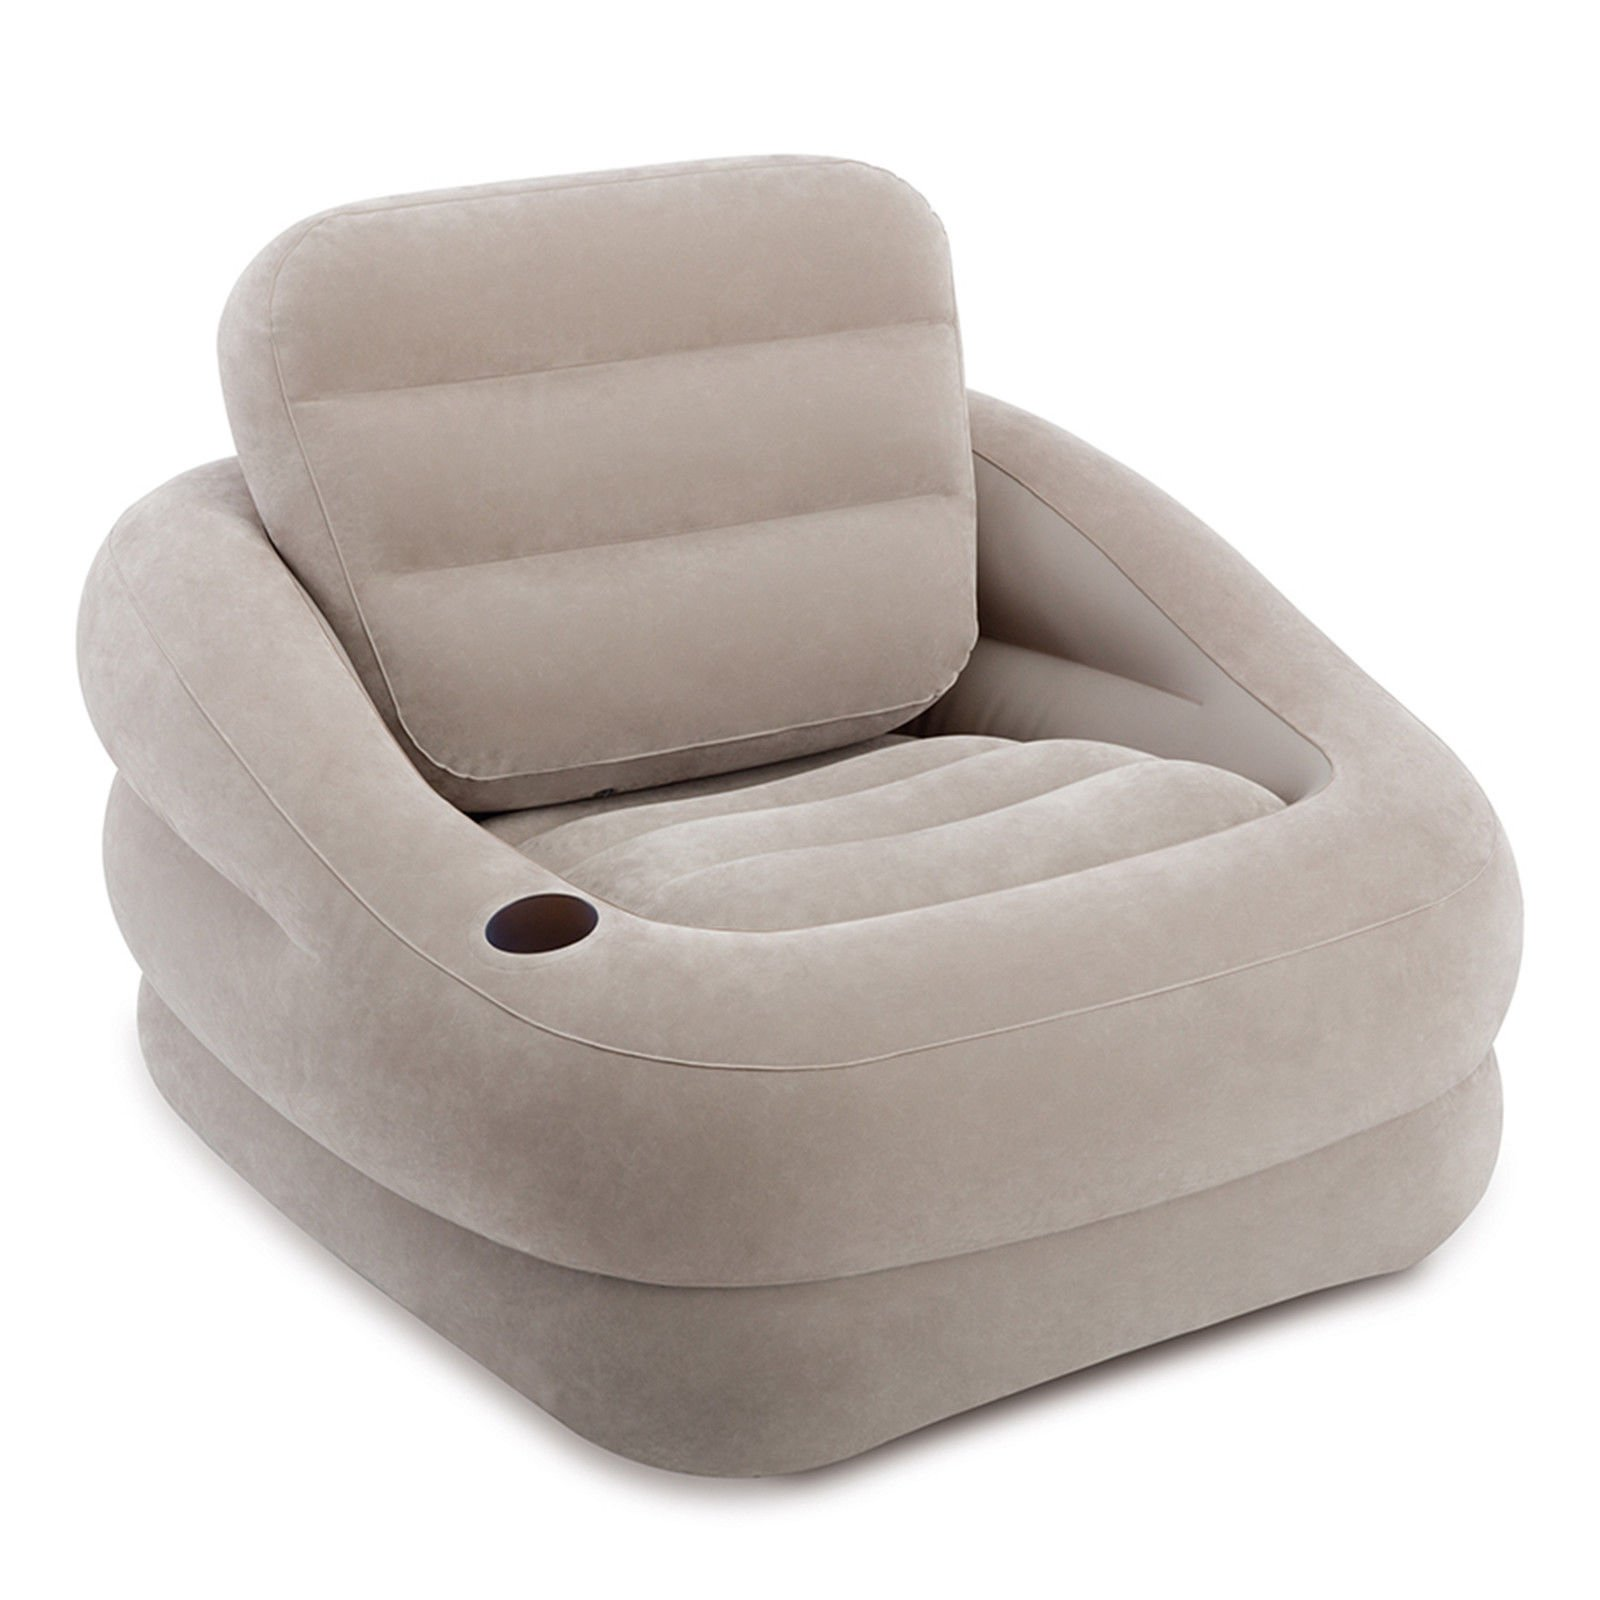 Inflatable Khaki Accent Chair with Cup Holder and Water Base With Ebook